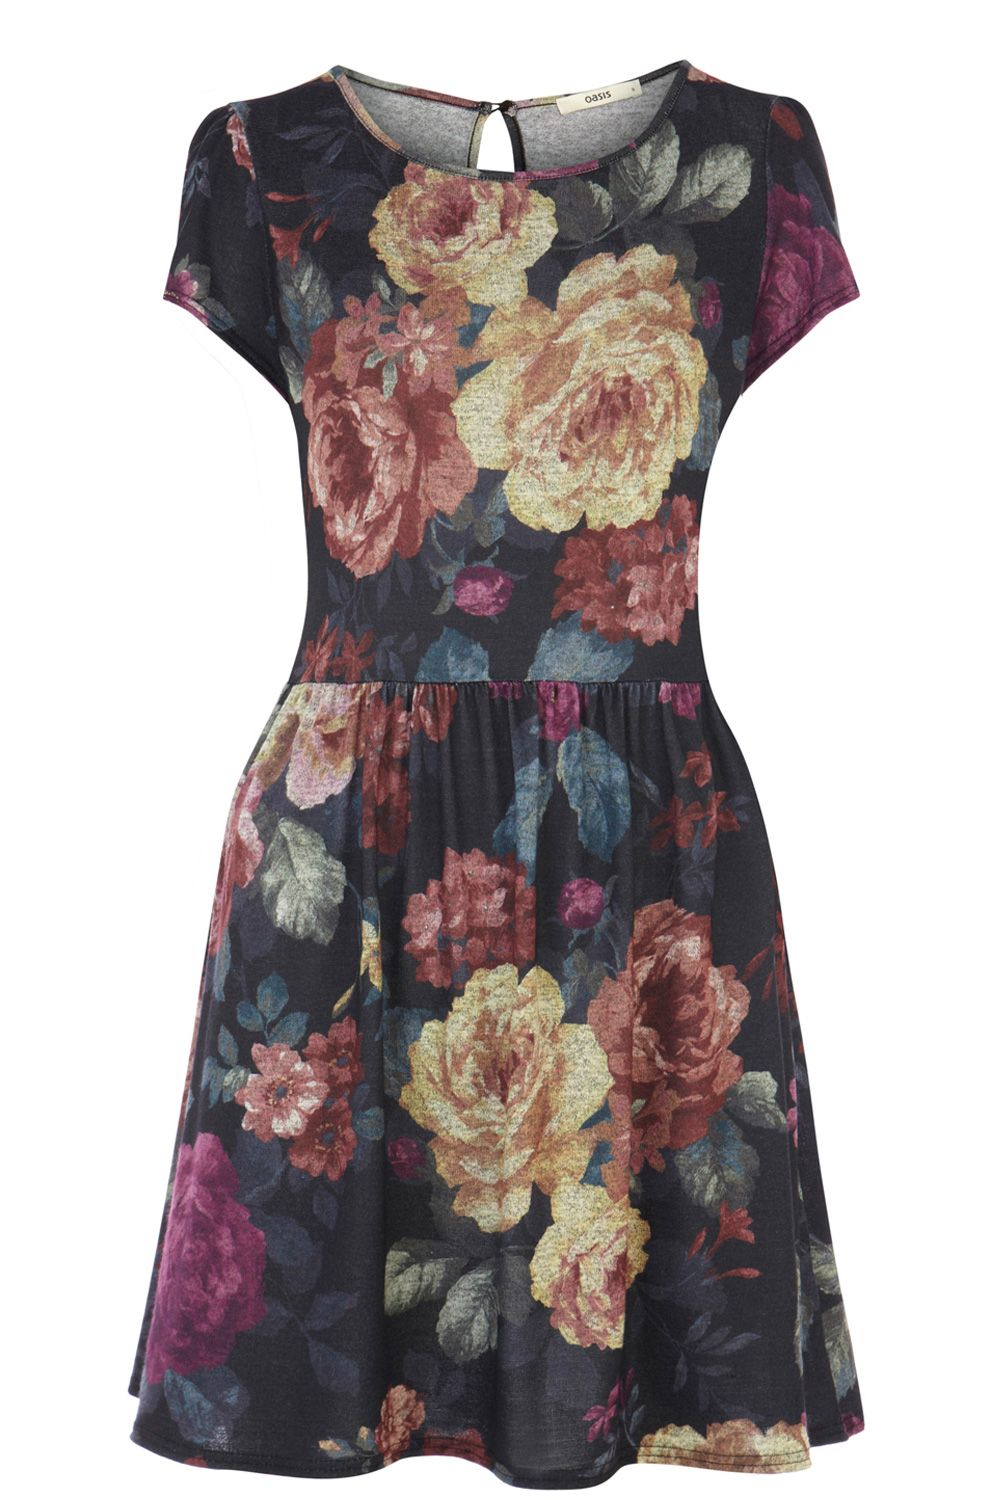 Large floral printed sweat dress